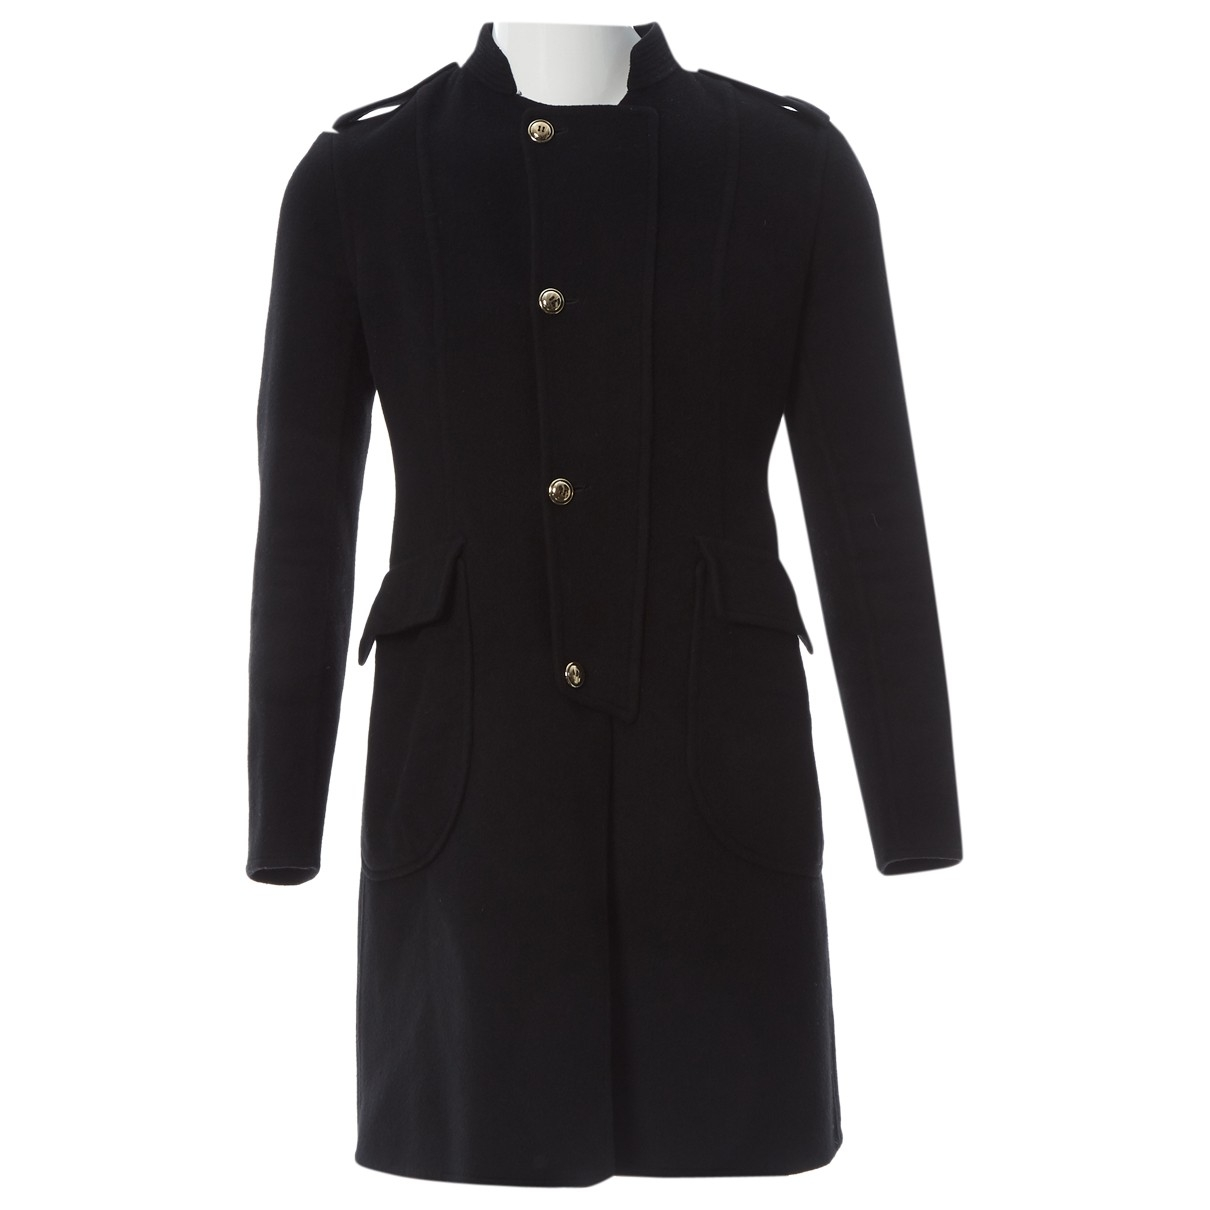 Yves Saint Laurent \N Black Wool coat for Women L International